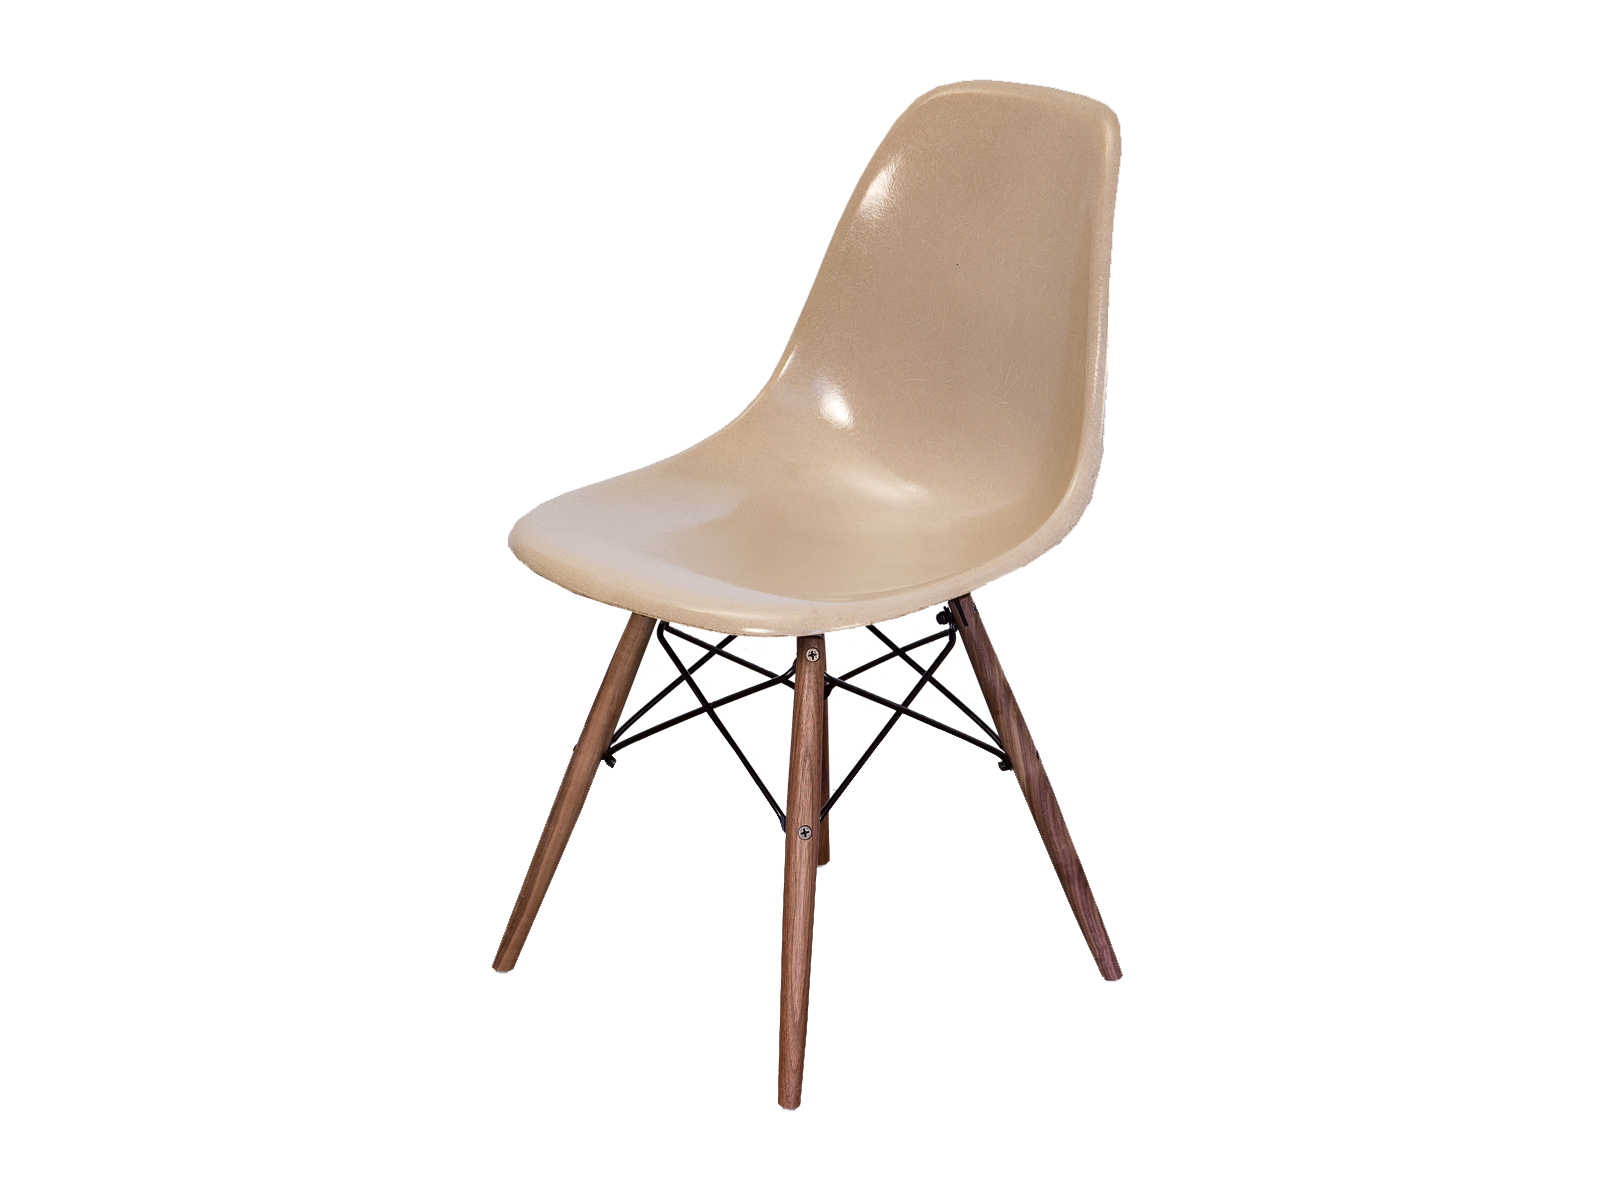 Eames Chair Beige Greige Eames Shell Chairs On Walnut Dowel Base Oam